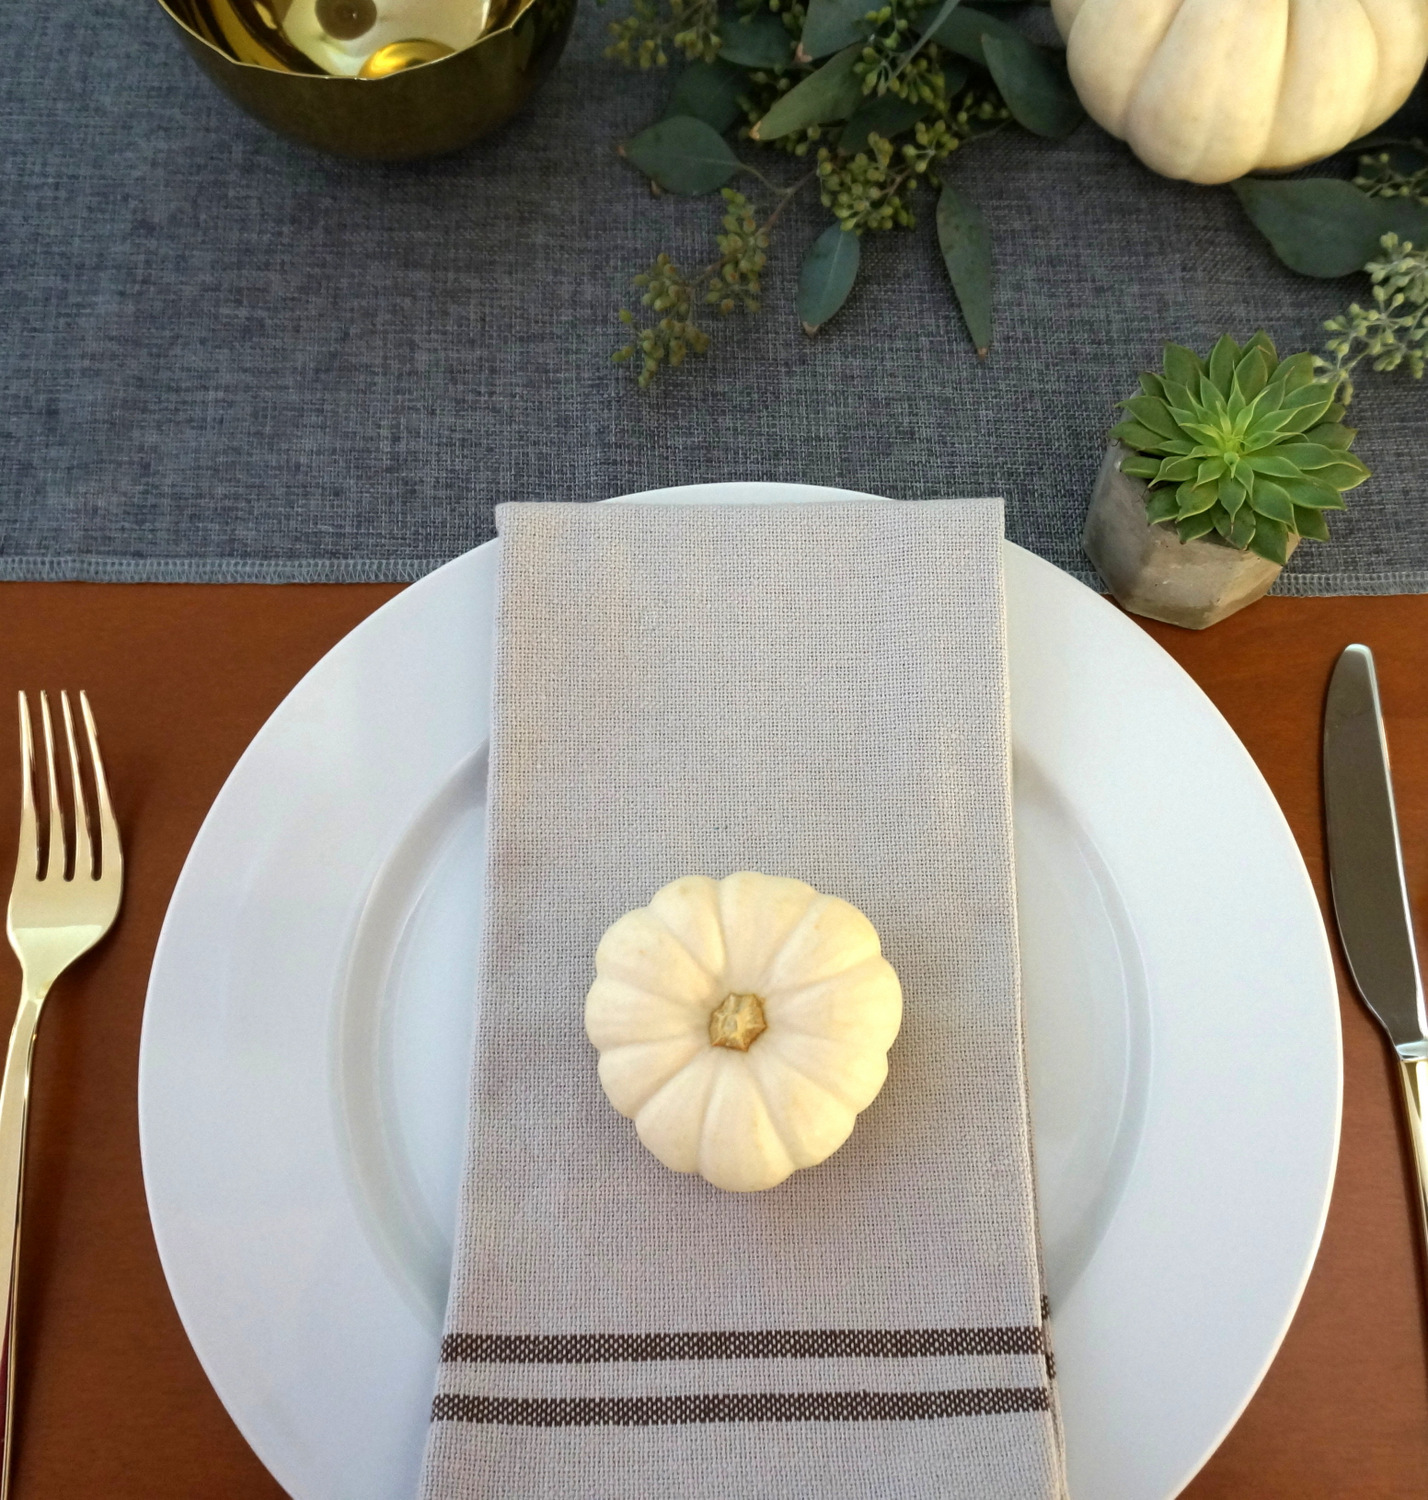 Pumpkin on a linen napkin